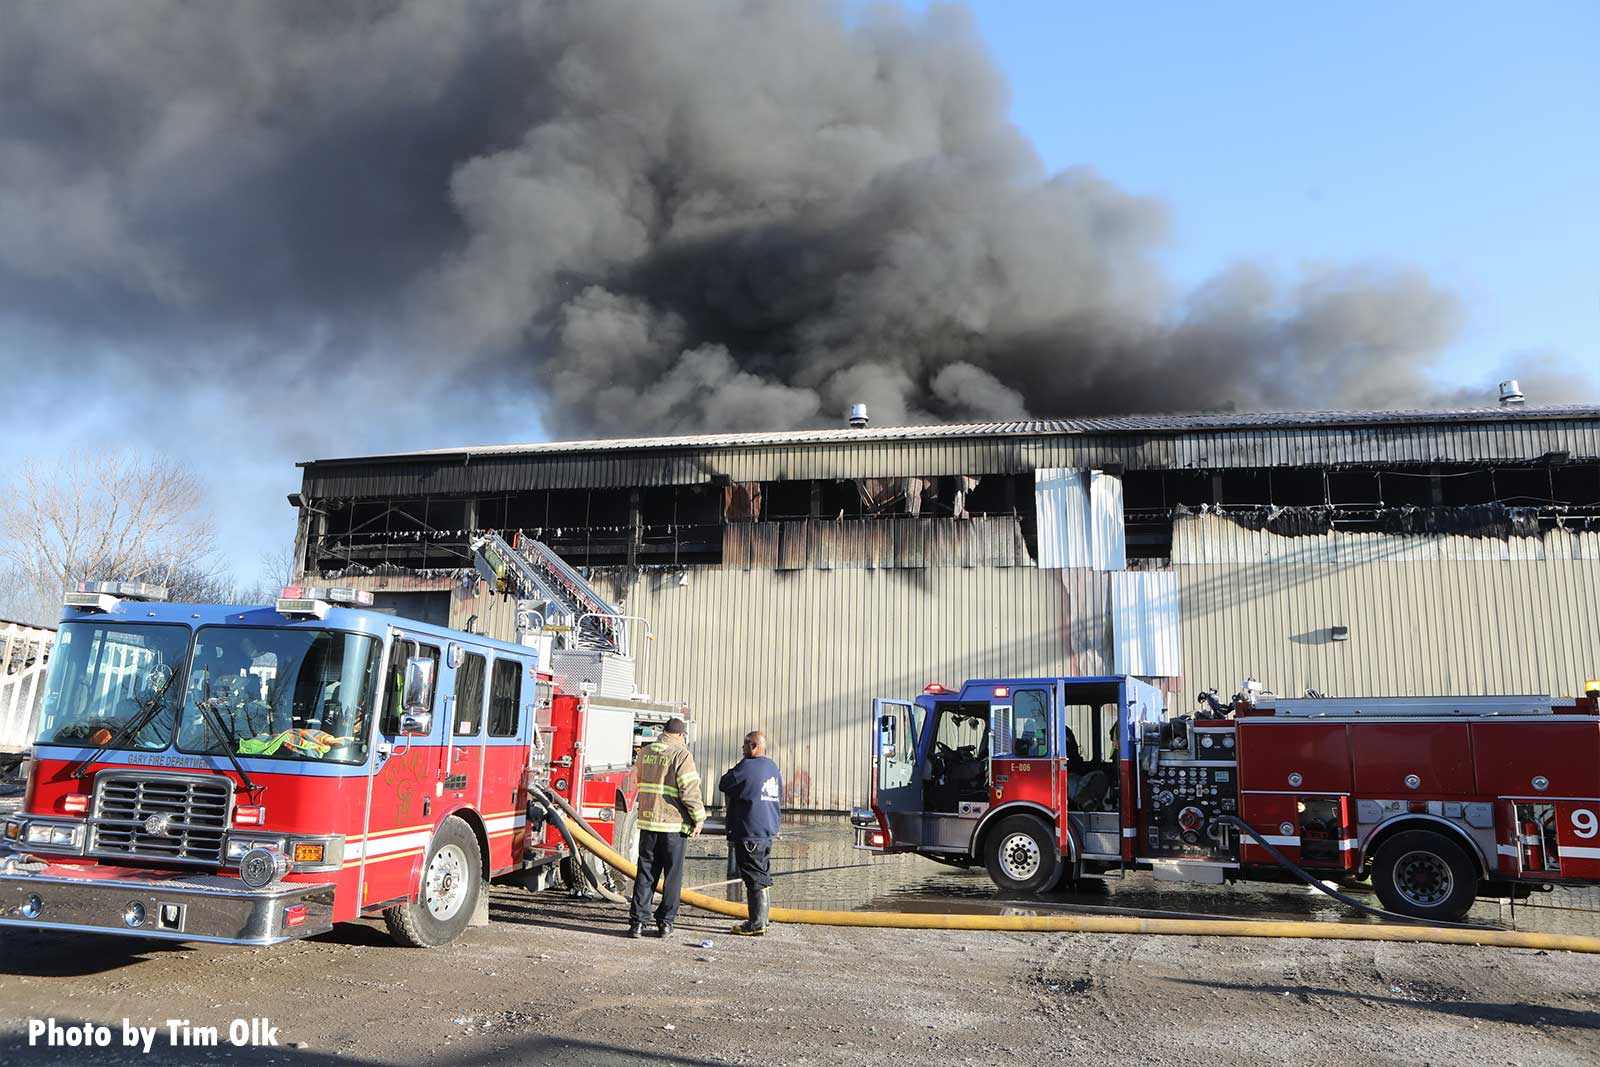 Fire trucks and smoke at industrial site